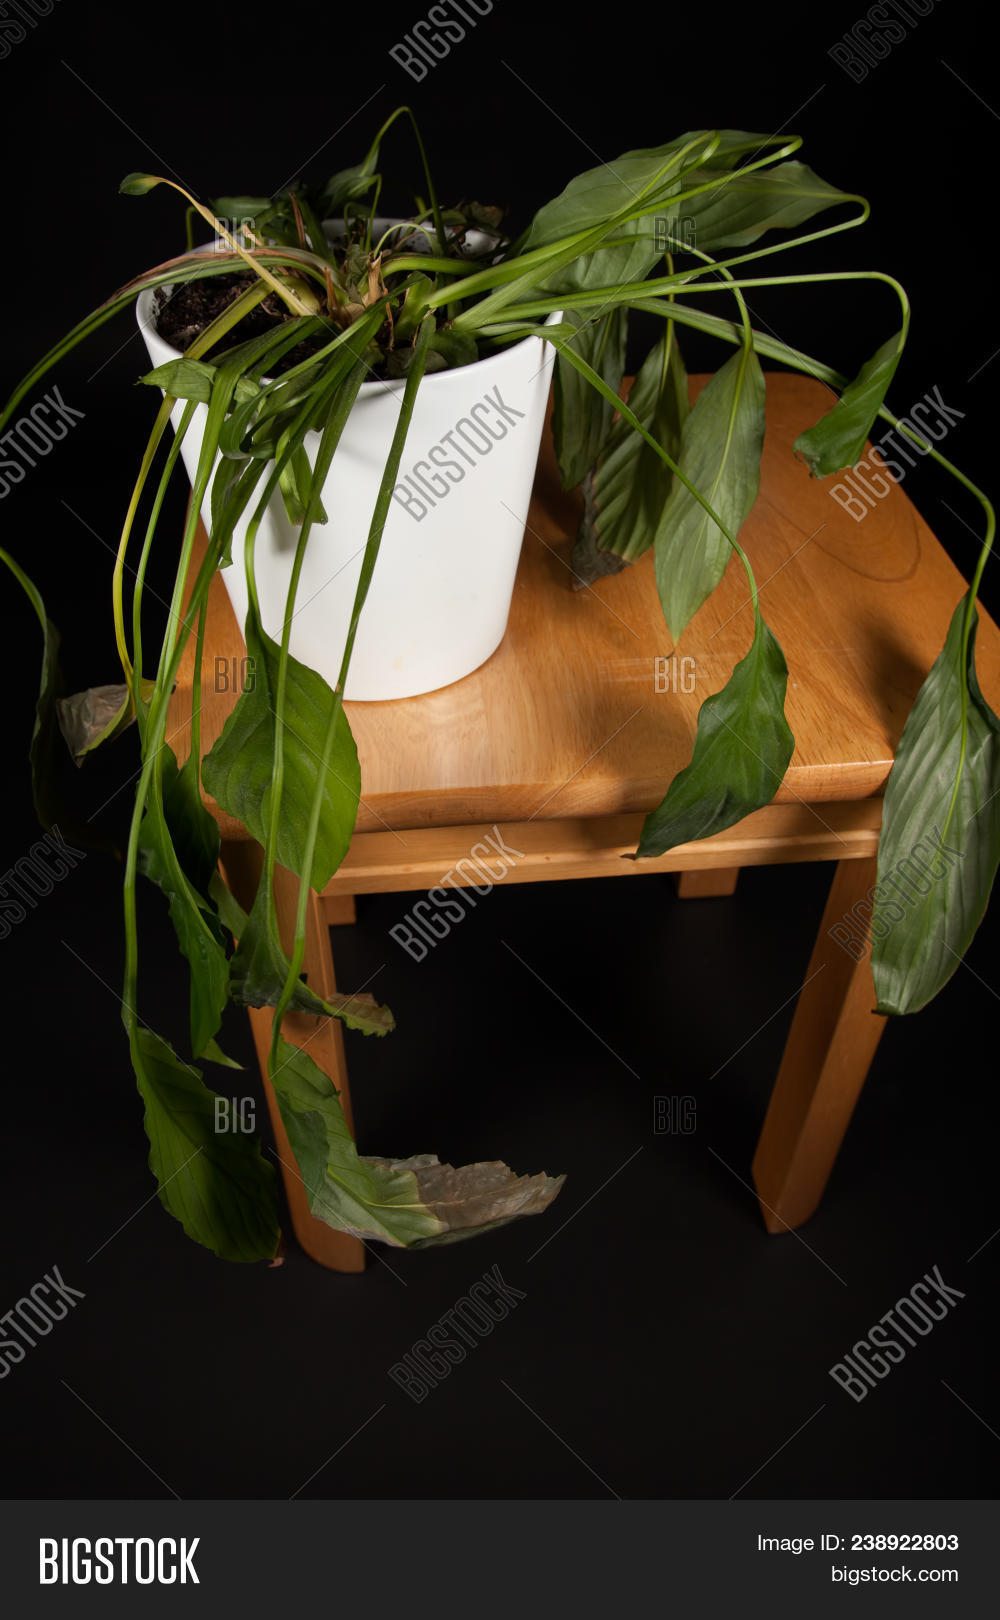 Dehydrated Indoor Pot- Image & Photo (Free Trial) | Bigstock on wilted rose plant, wilted ivy plant, wilted boston fern plant, wilted daisy plant, wilted pothos plant, wilted poppy plant, wilted aloe vera plant,